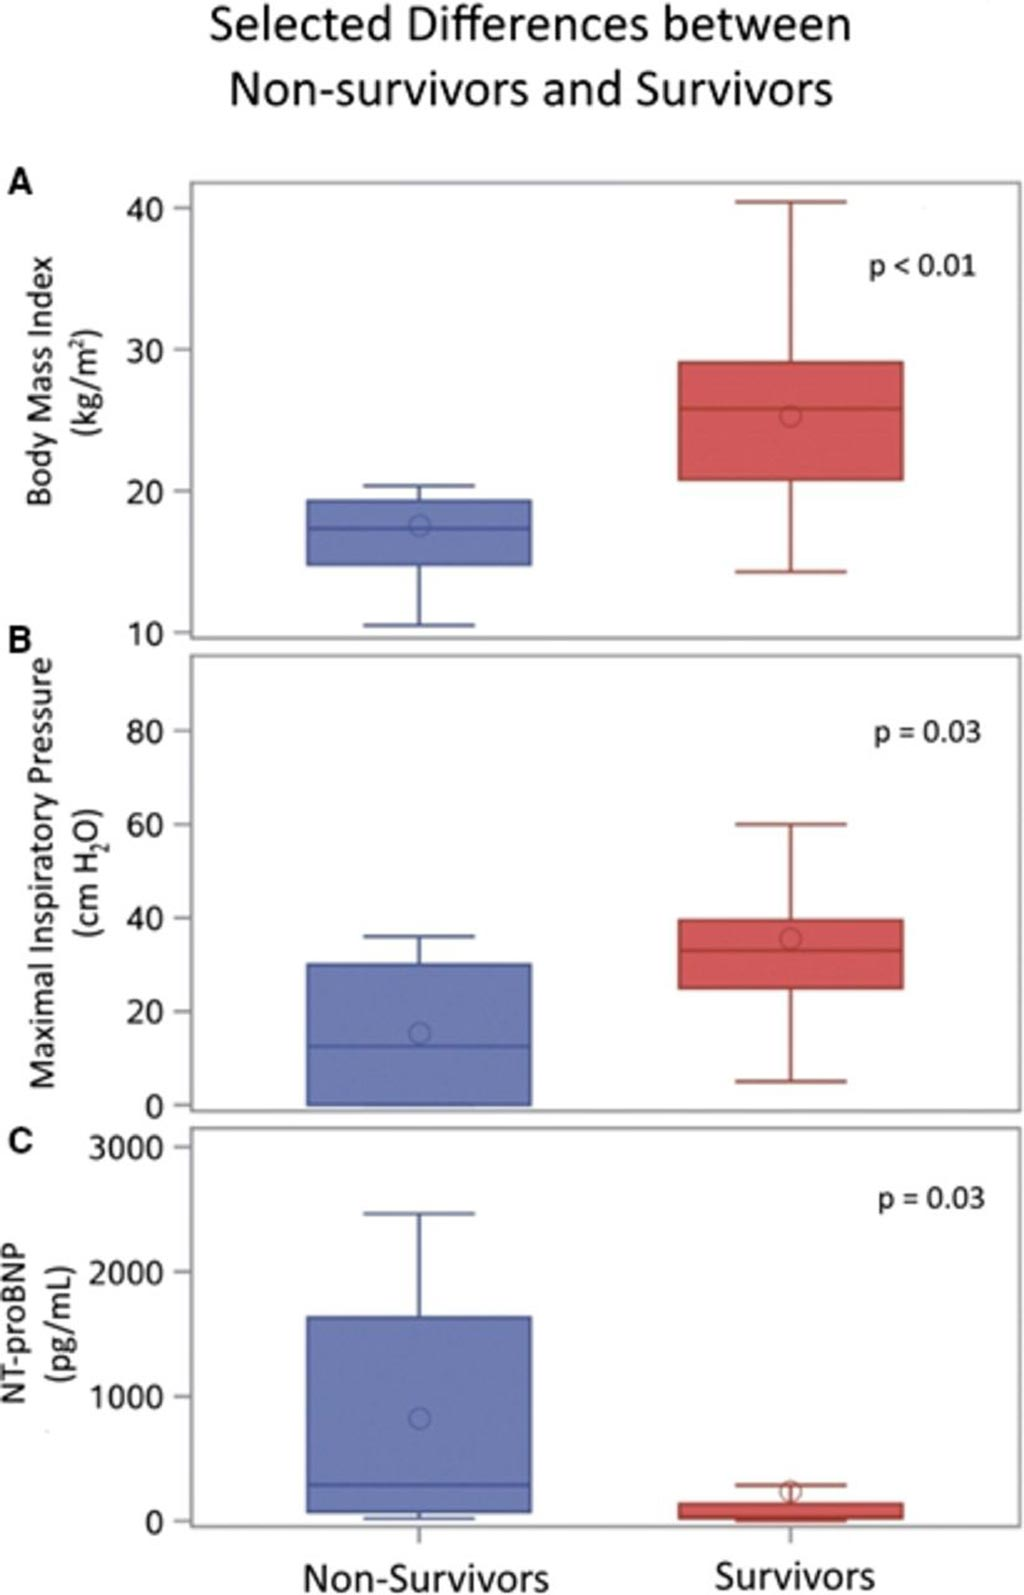 Image: Box‐and‐whisker plot comparisons between nonsurvivors (n=8) and survivors (n=35) by: (A) body mass index, (B) maximal inspiratory pressure, and (C) N‐terminal pro‐brain natriuretic peptide (NT‐proBNP) (Photo courtesy of Cheeran D et al, 2017, Journal of the American Heart Association).